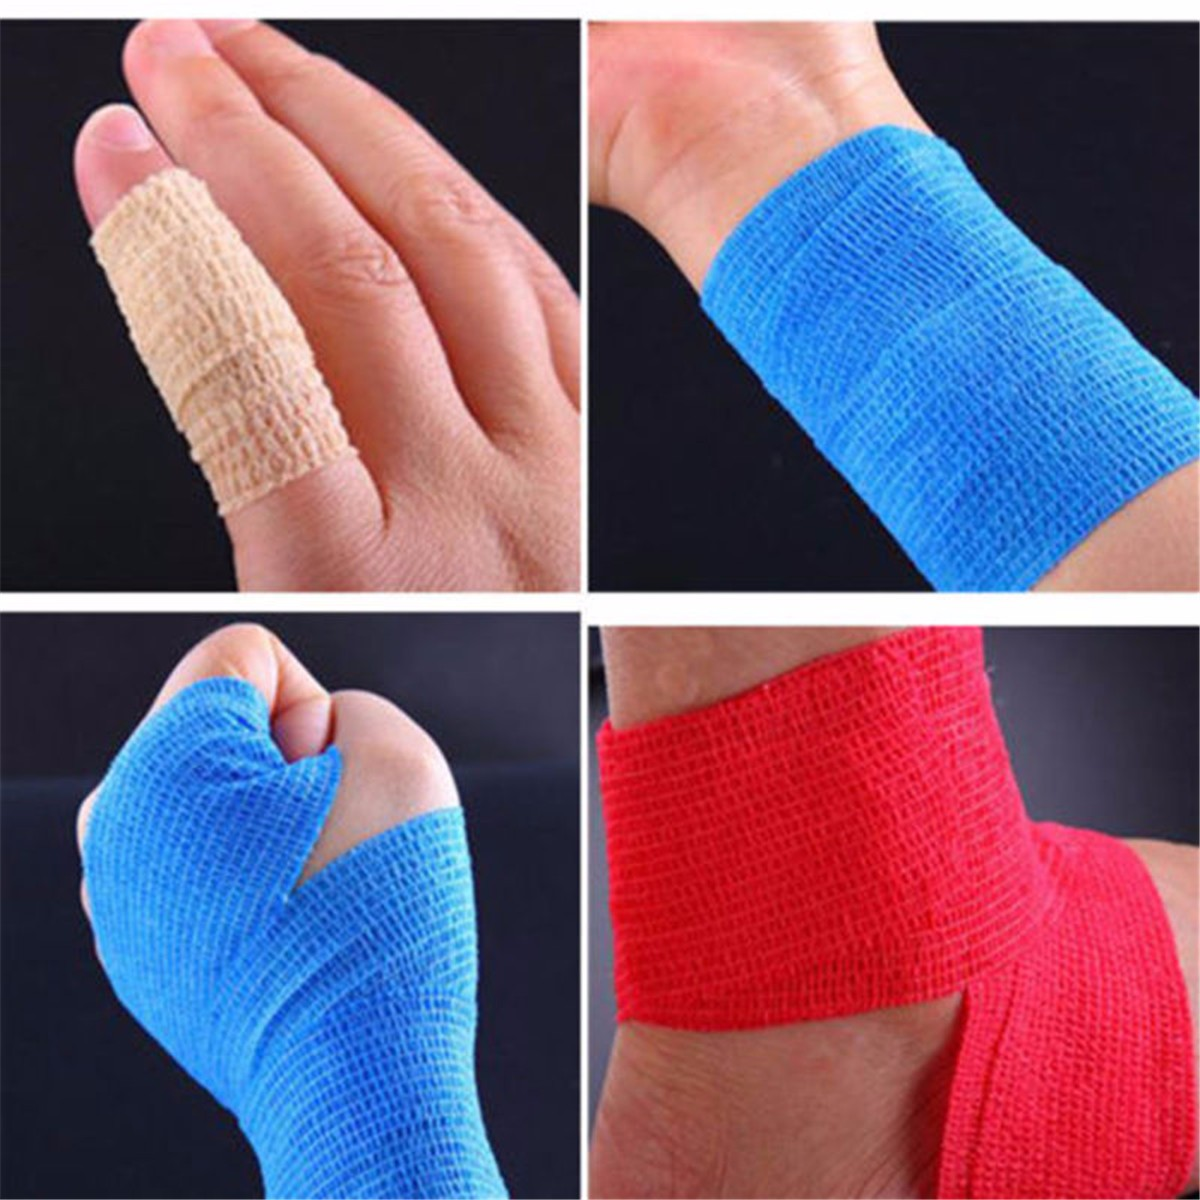 450x5cm Waterproof First Aid Self-Adhesive Elastic Bandage Muscle Care Gauze Tape